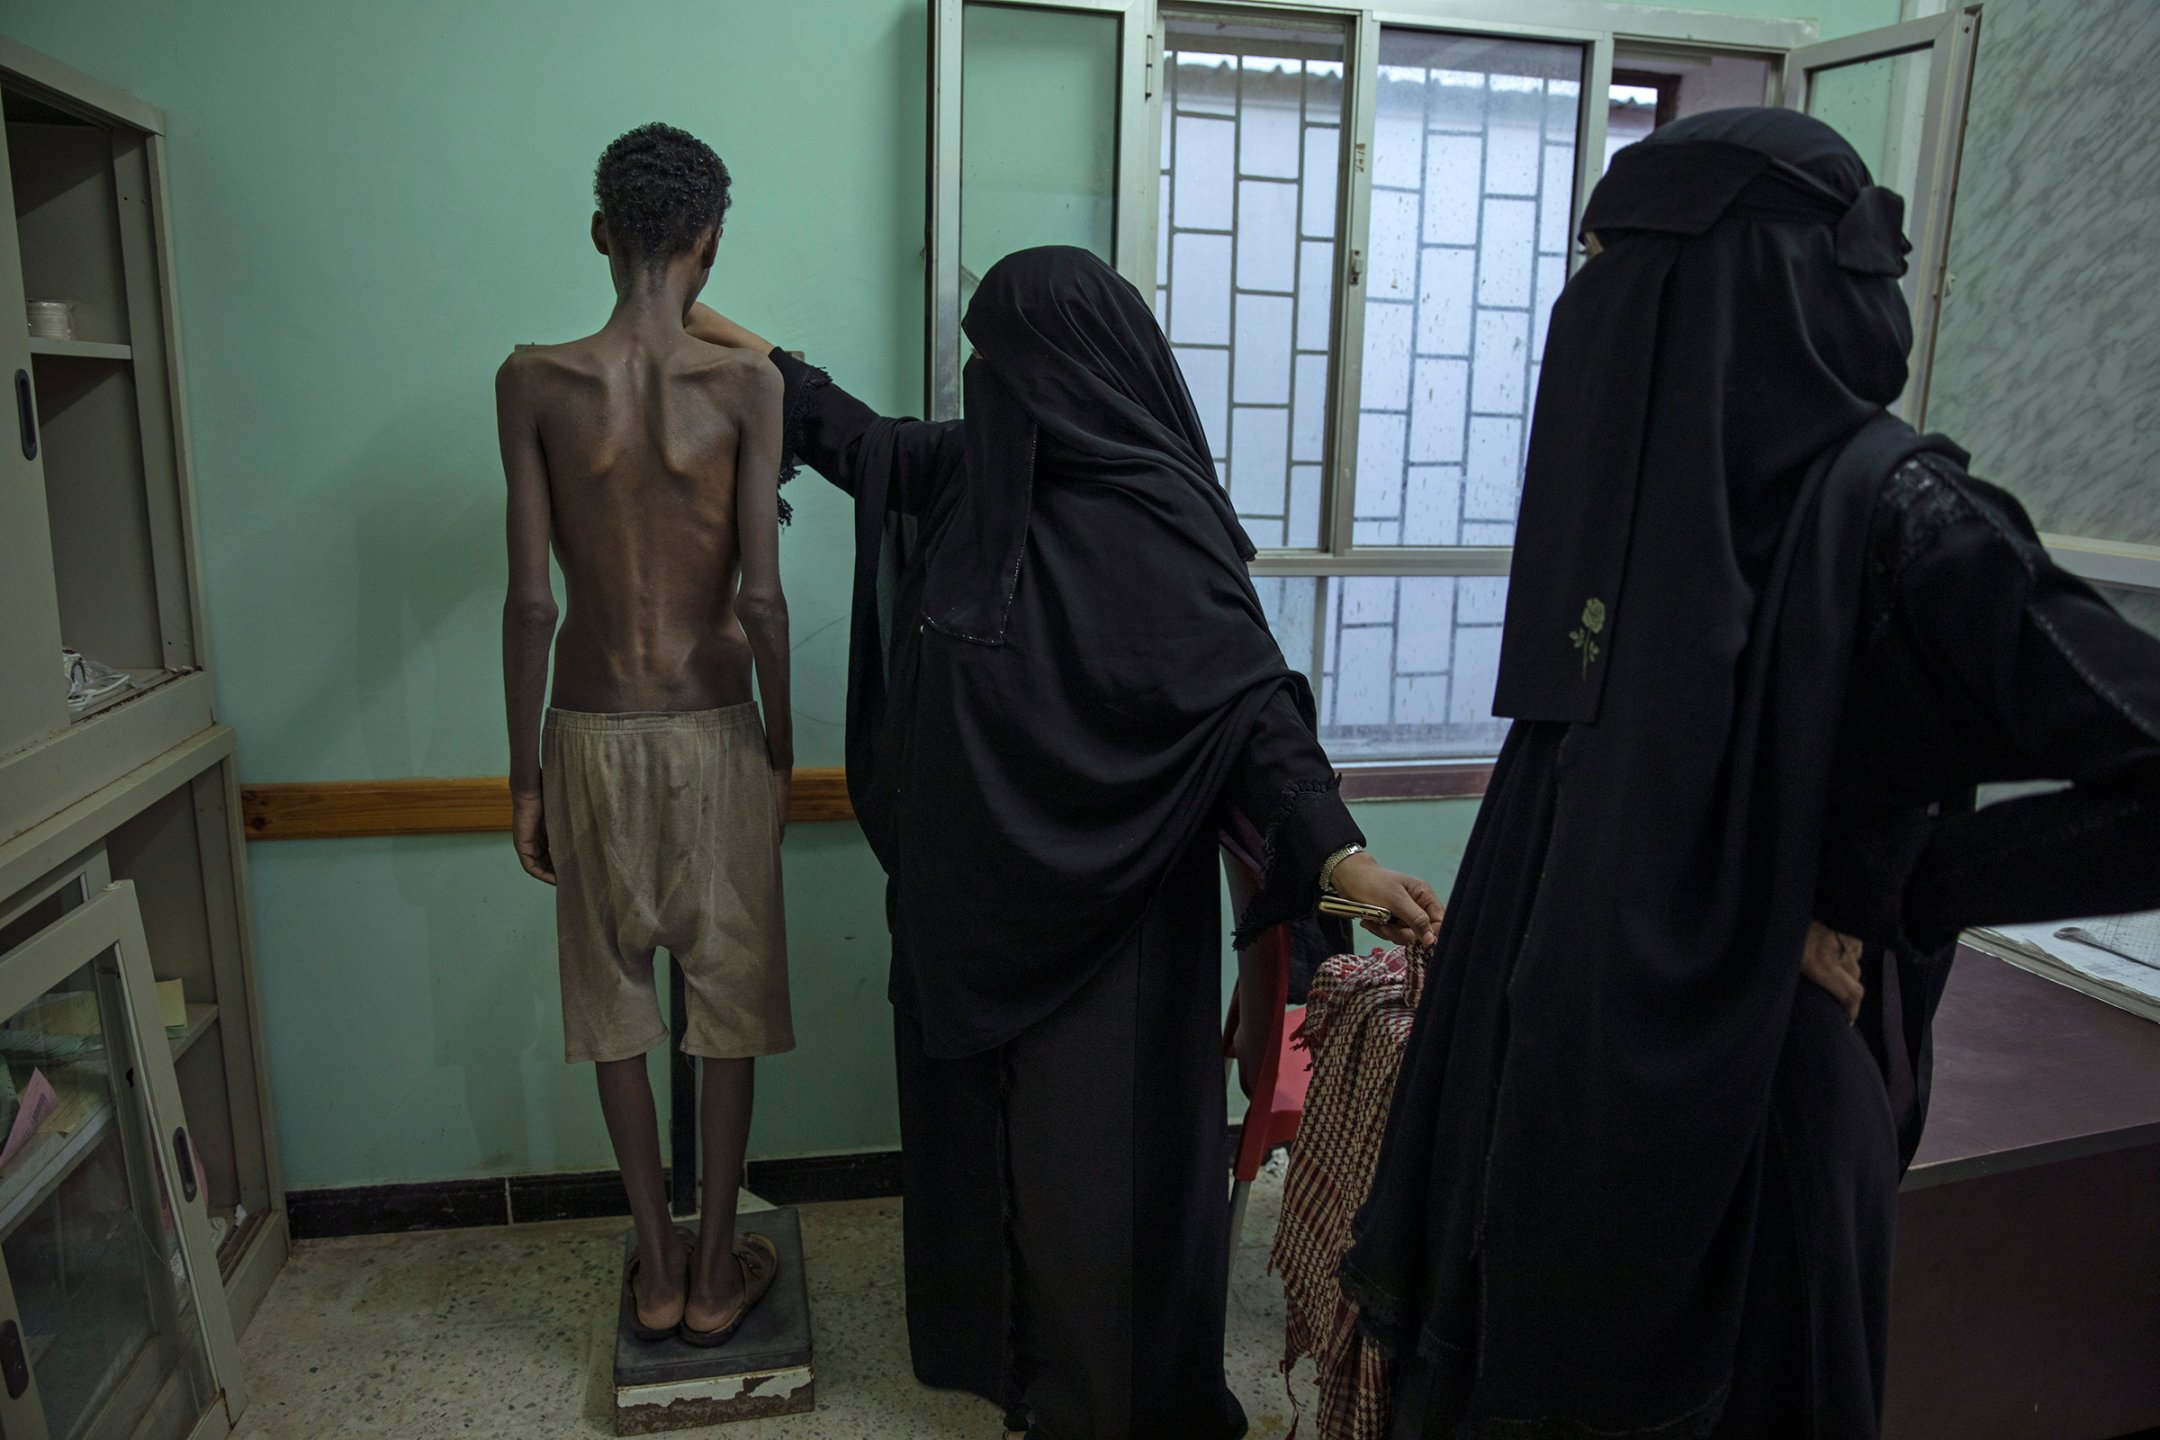 Ethiopian migrant Mohammed Hussein, who is severely malnourished from imprisonment by smugglers, stands on a scale at the Ras al-Ara Hospital in Lahj, Yemen, on Aug. 1. The 19-year-old weighs 31 kilograms (68 pounds).